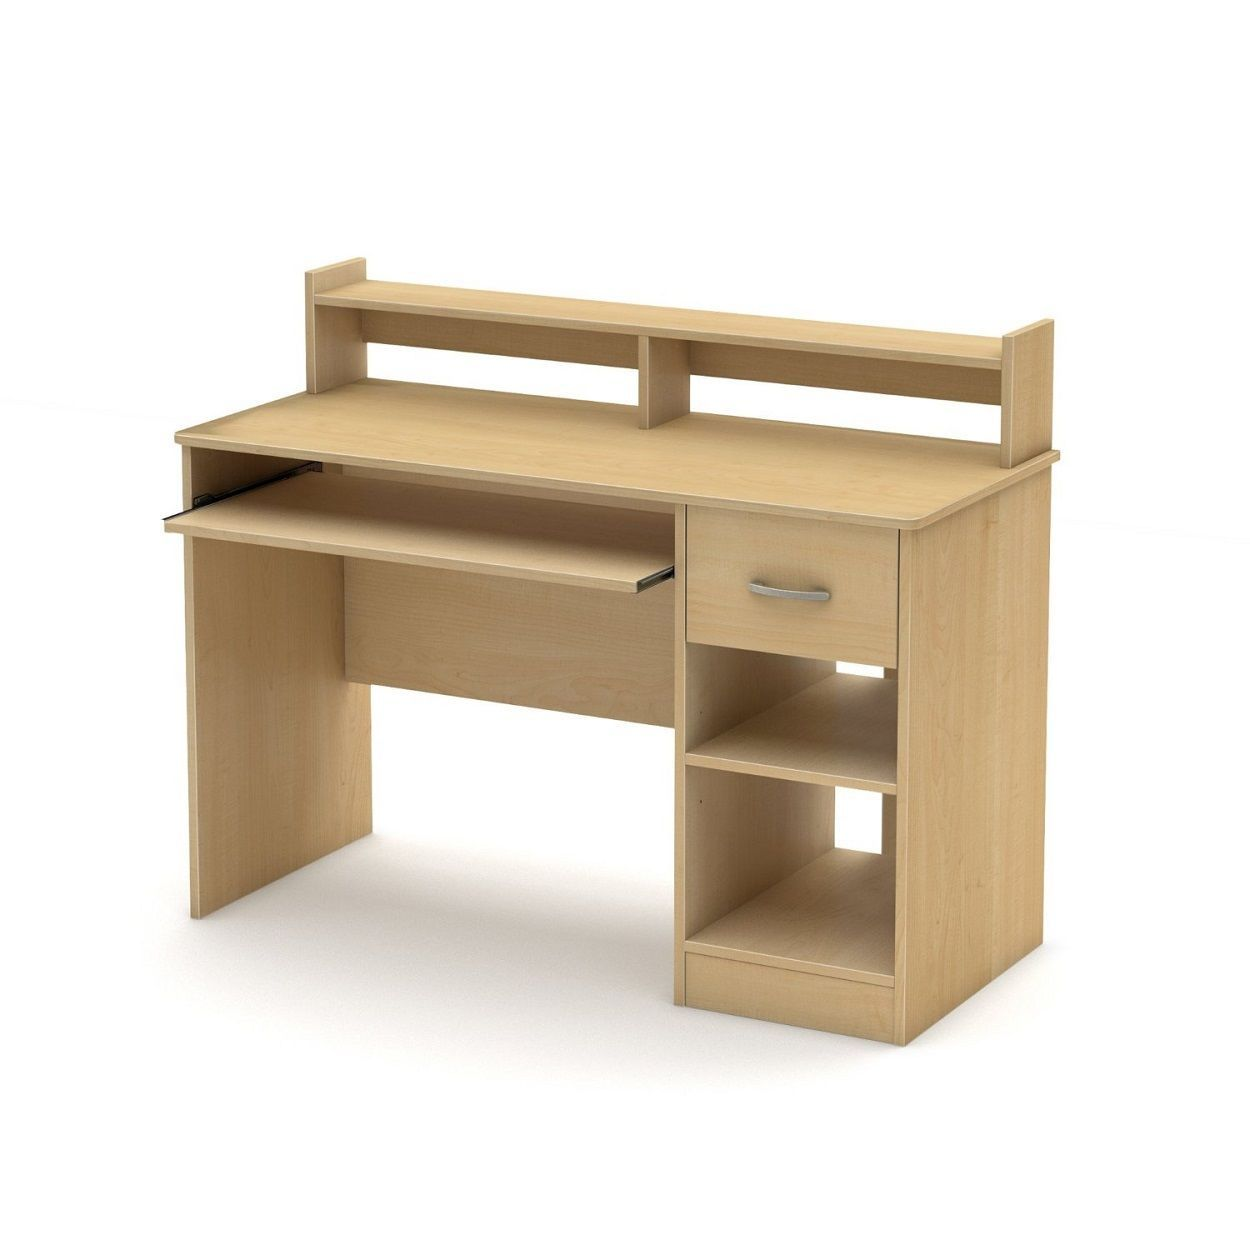 Marvelous photograph of  Wood Wooden Dorm Home Office Furniture Desks & Home Office Furniture with #957136 color and 1250x1250 pixels